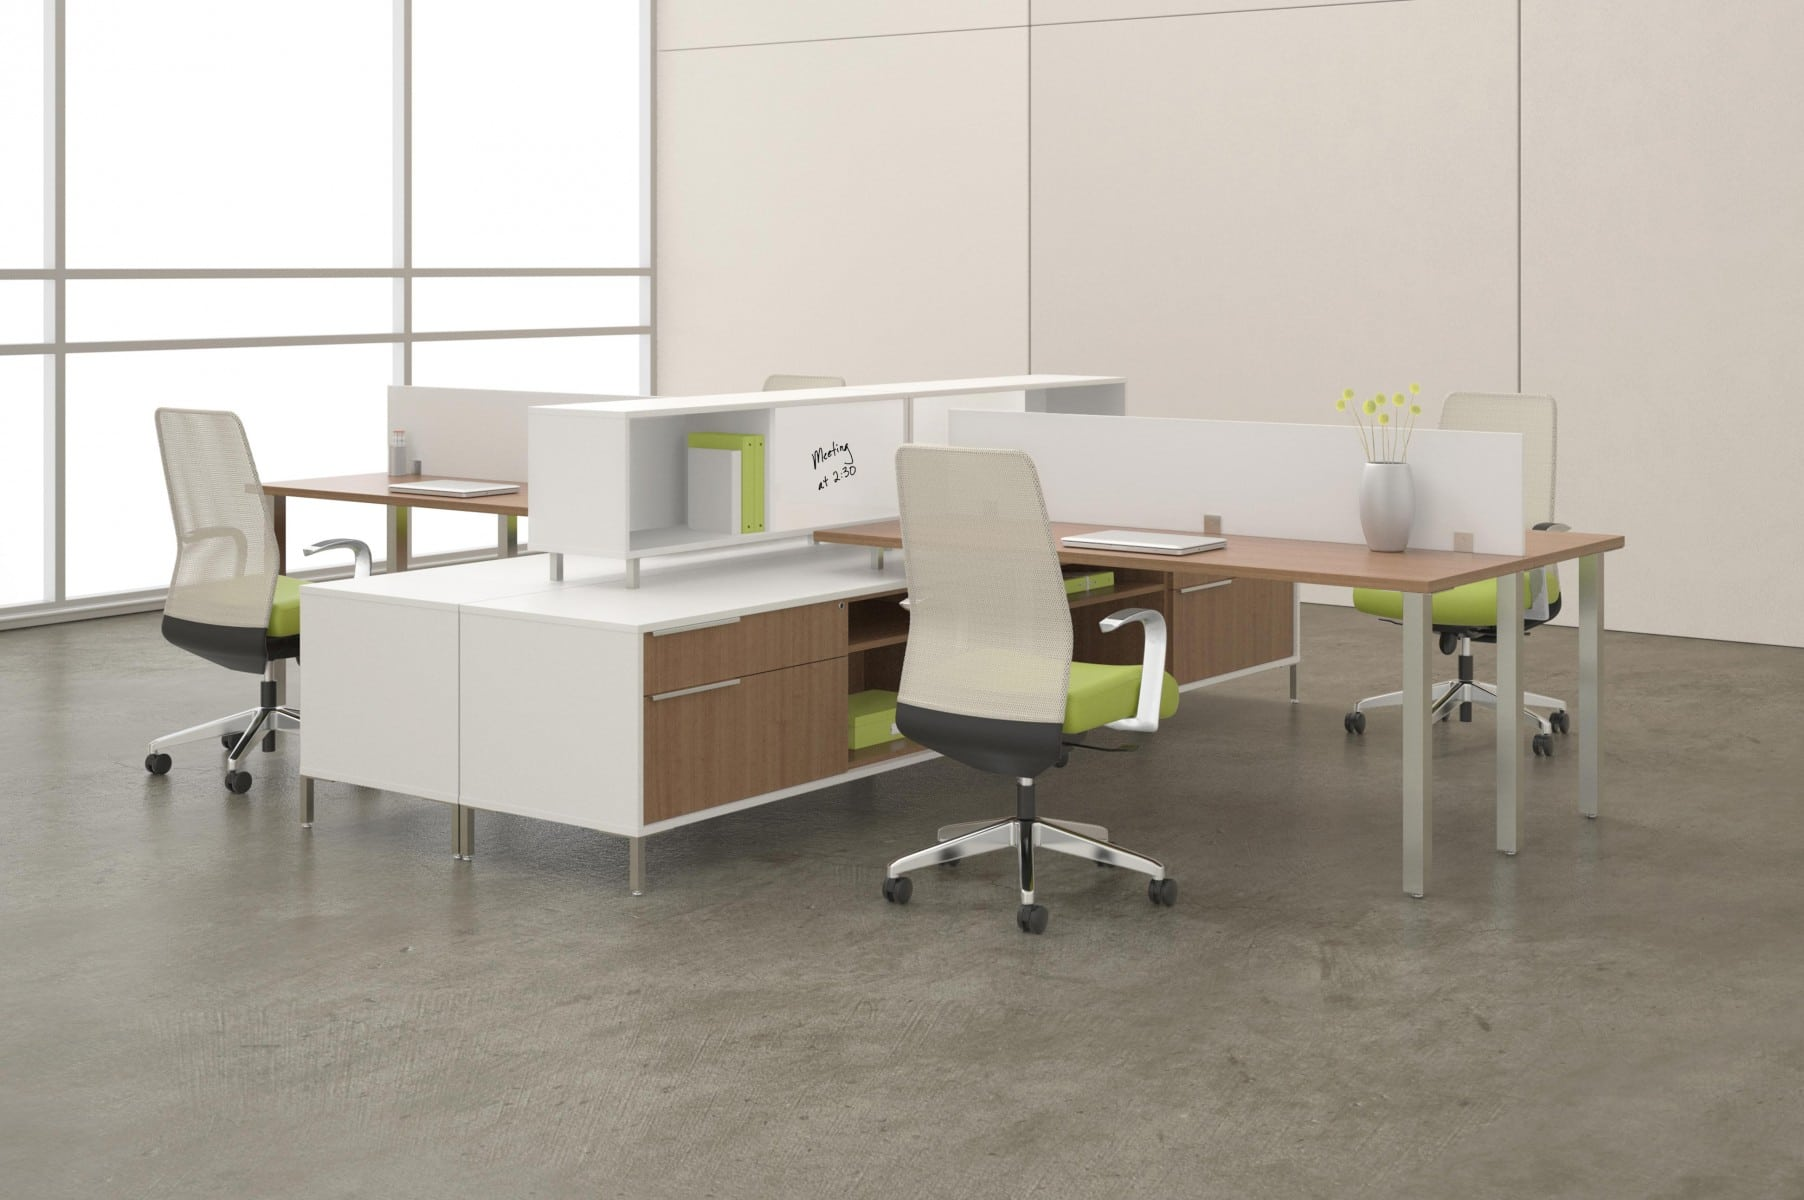 modern office desk furniture system with green accents and light wood